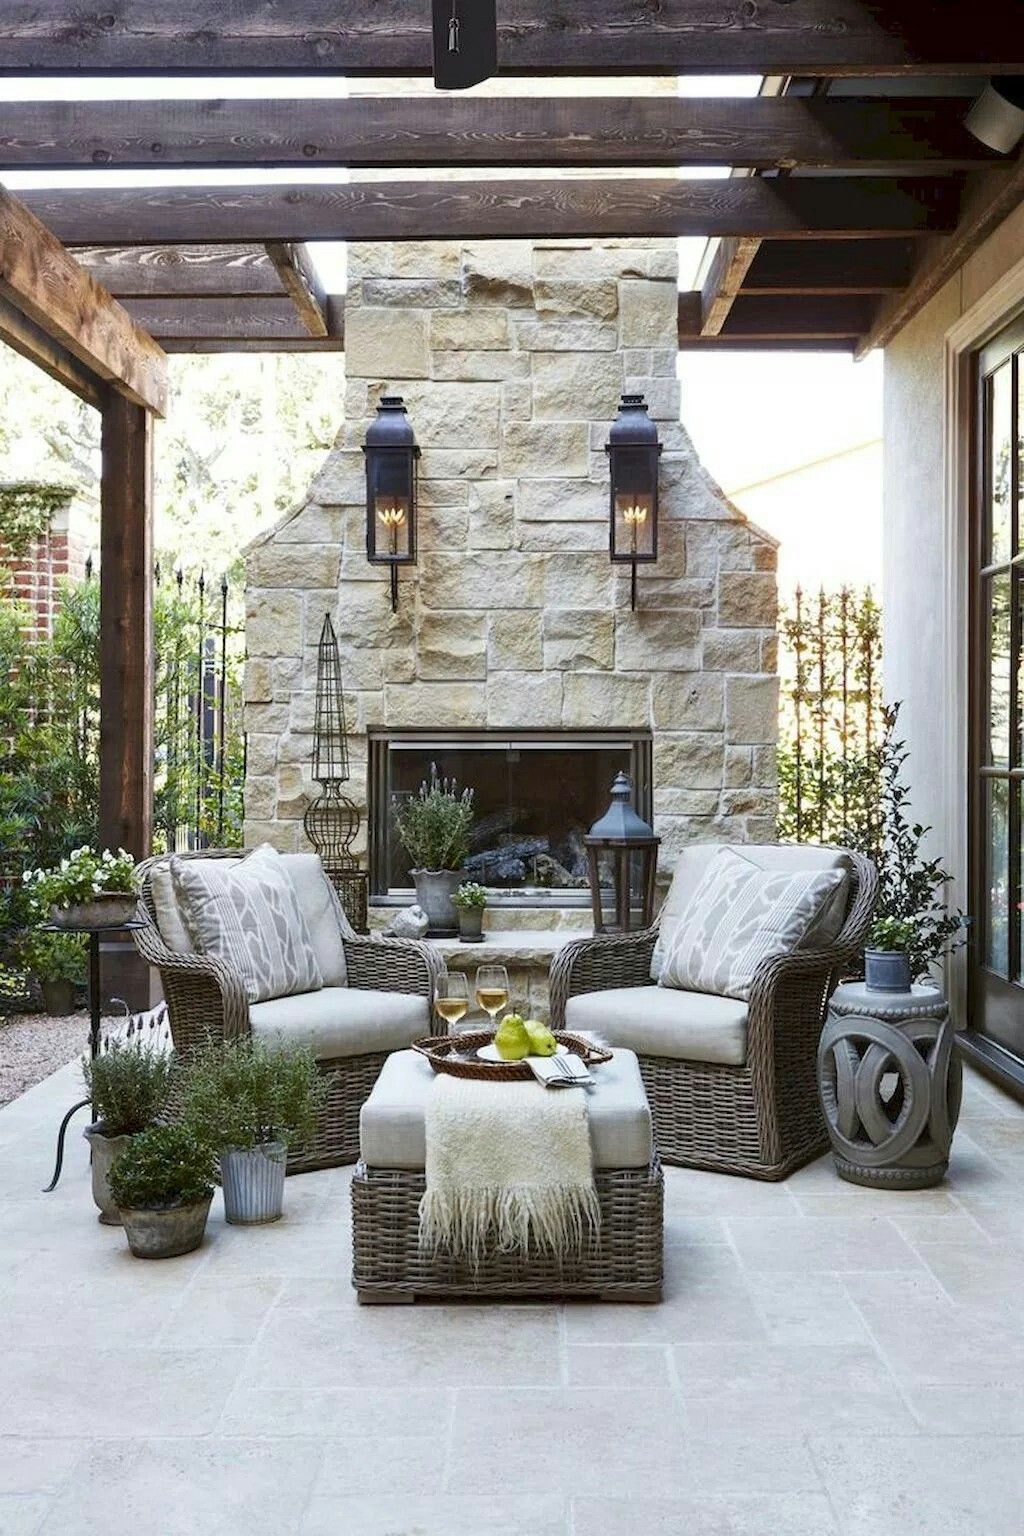 French Country Fireplace Pin By Thumbtack On Outdoor Spaces Pinterest Outdoor Living